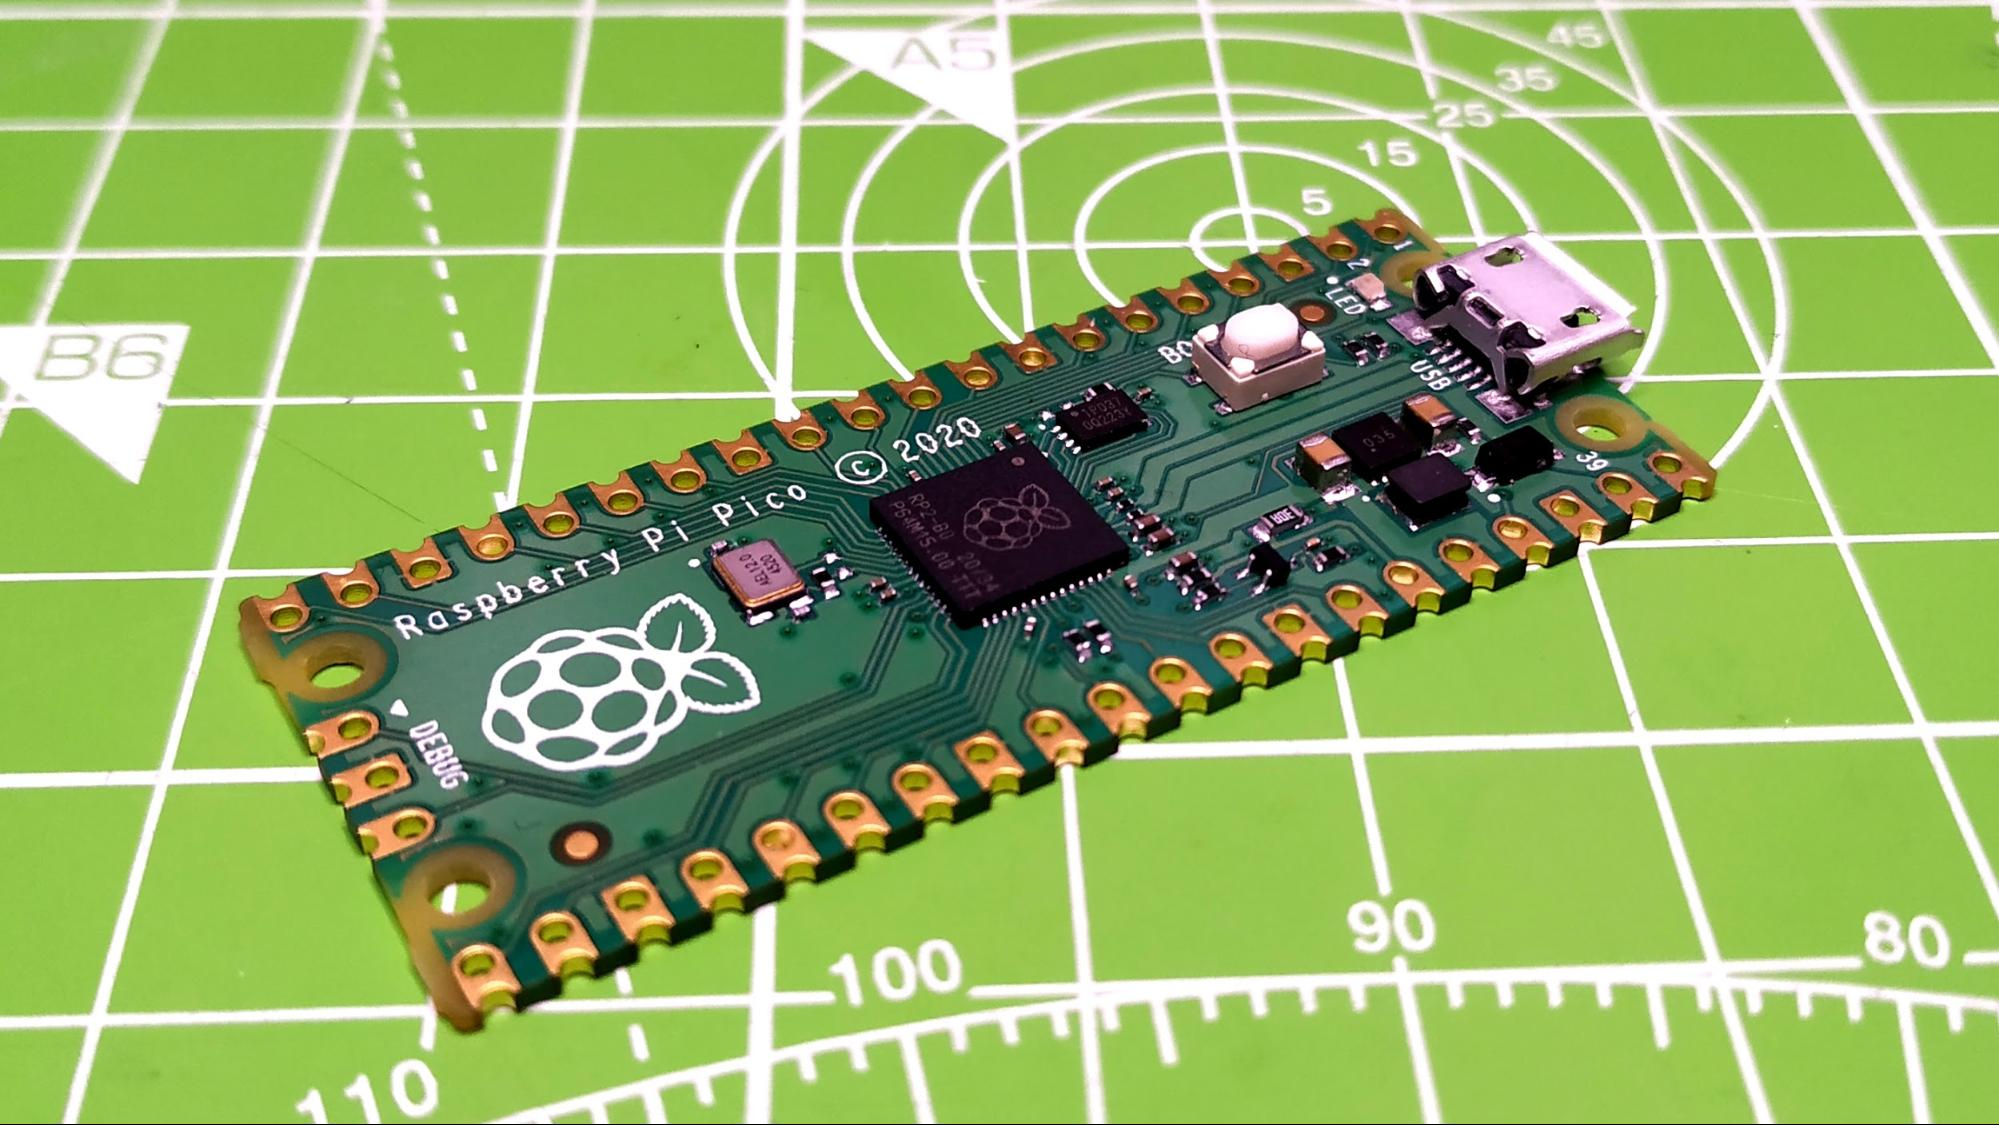 Raspberry Pi Pico Gains Unix-like Operating System